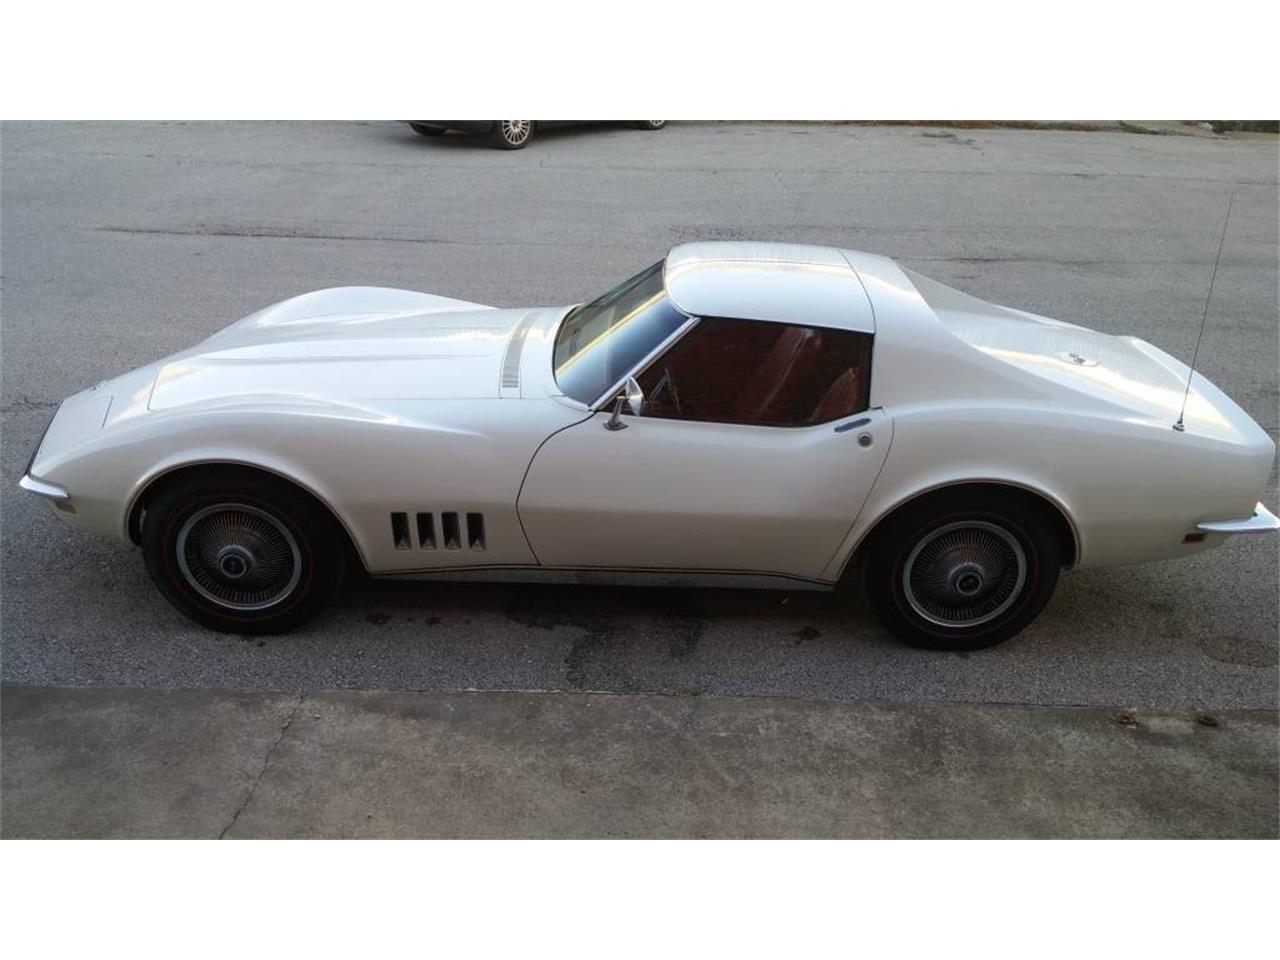 Large Picture of Classic '68 Corvette located in Missouri Auction Vehicle Offered by Vintage Vettes, LLC - MO22